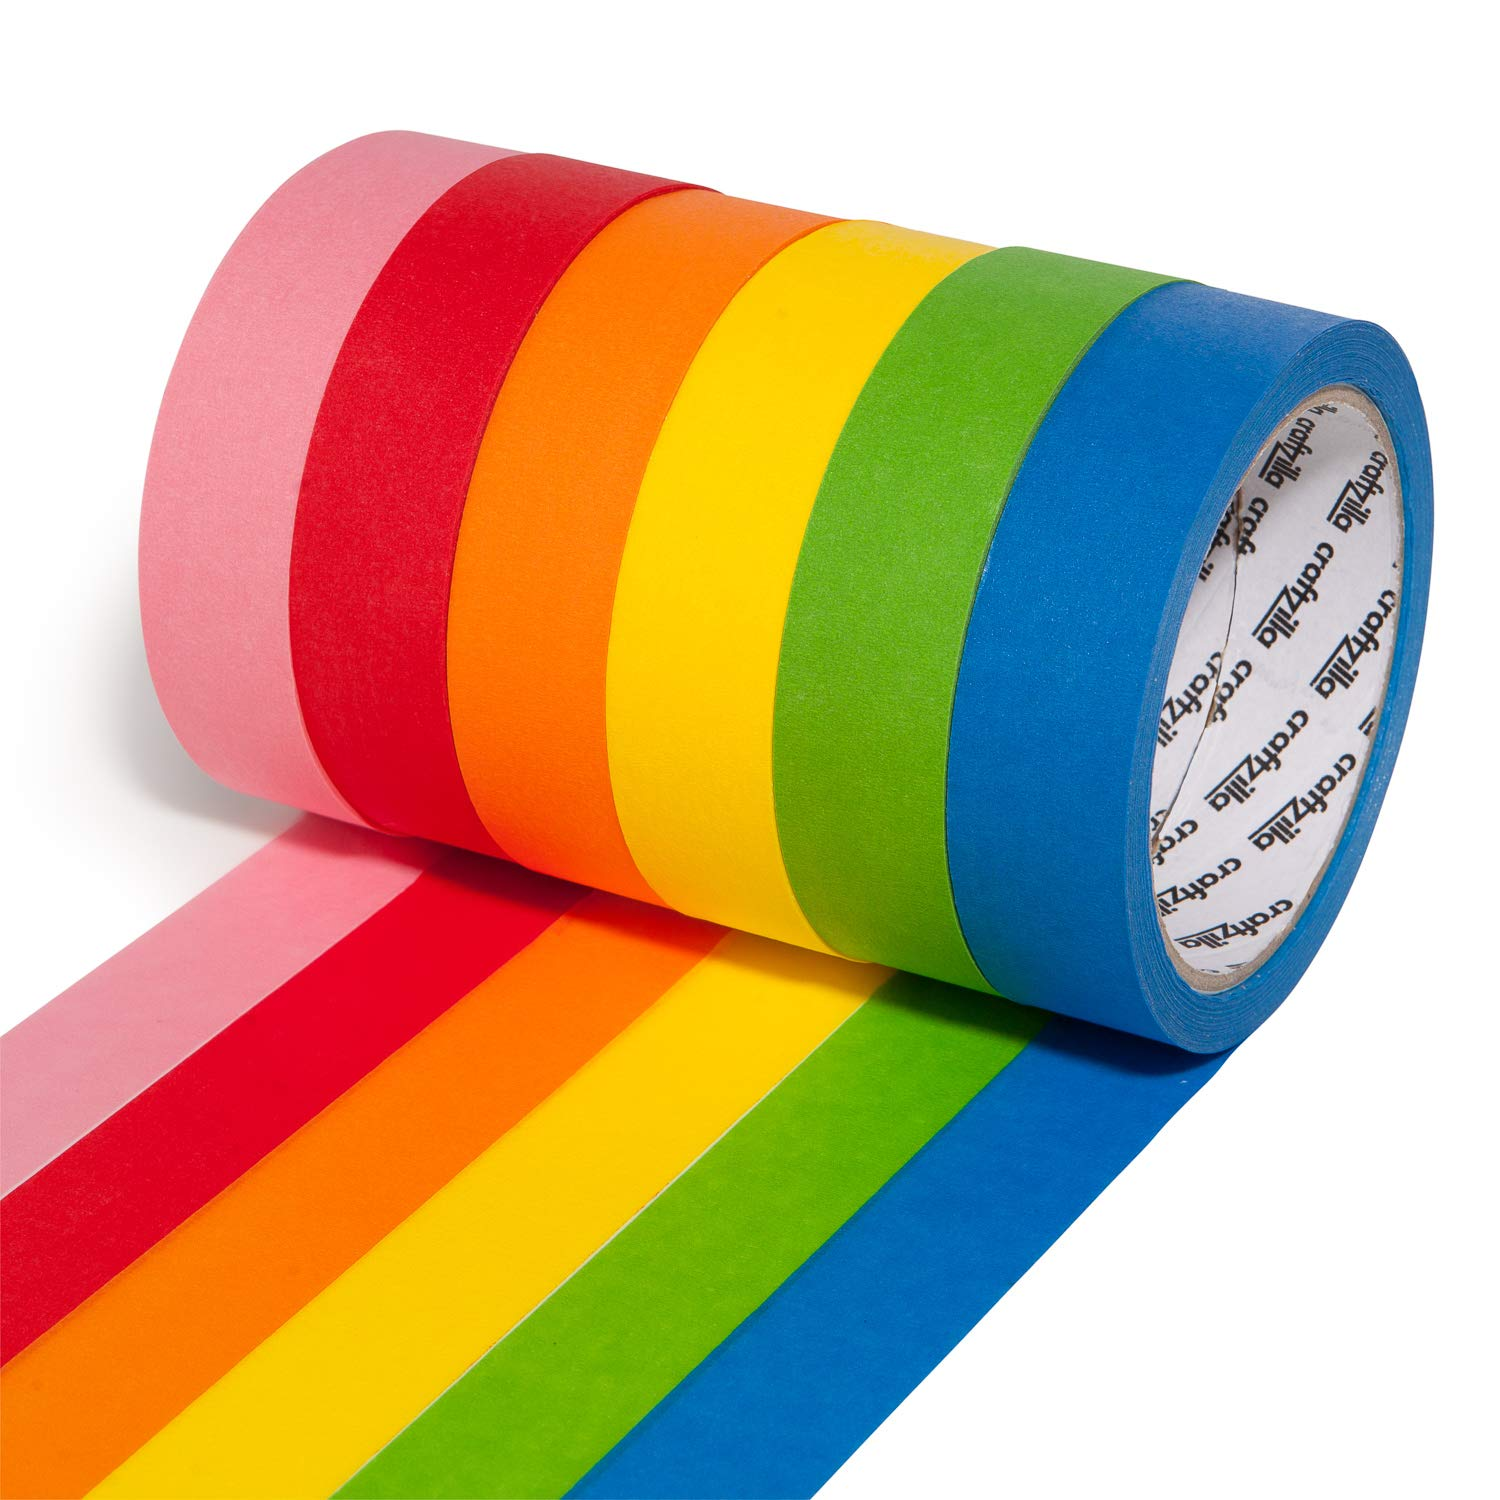 Craftzilla Colored Masking Tape – 6 Rolls of 20 Yards x 1 Inch Rainbow Tape – Colorful Craft Tape for Kids Teachers & Painters - for Home, Classroom, Labeling and Laboratory Identification Use: Industrial & Scientific